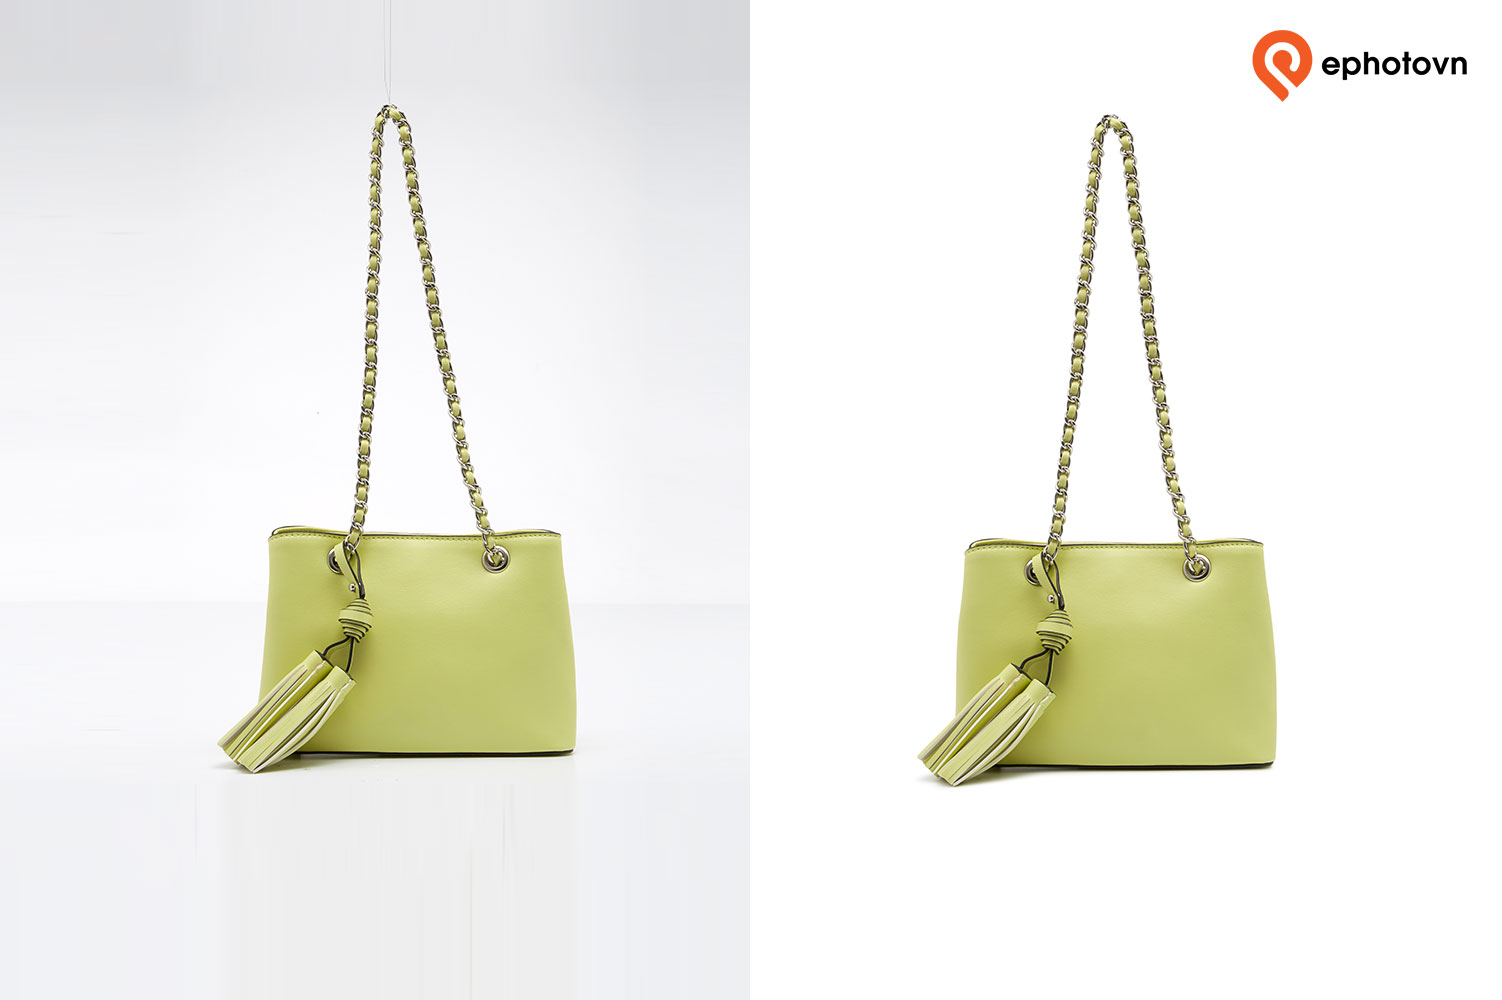 Professional Clipping Path Services